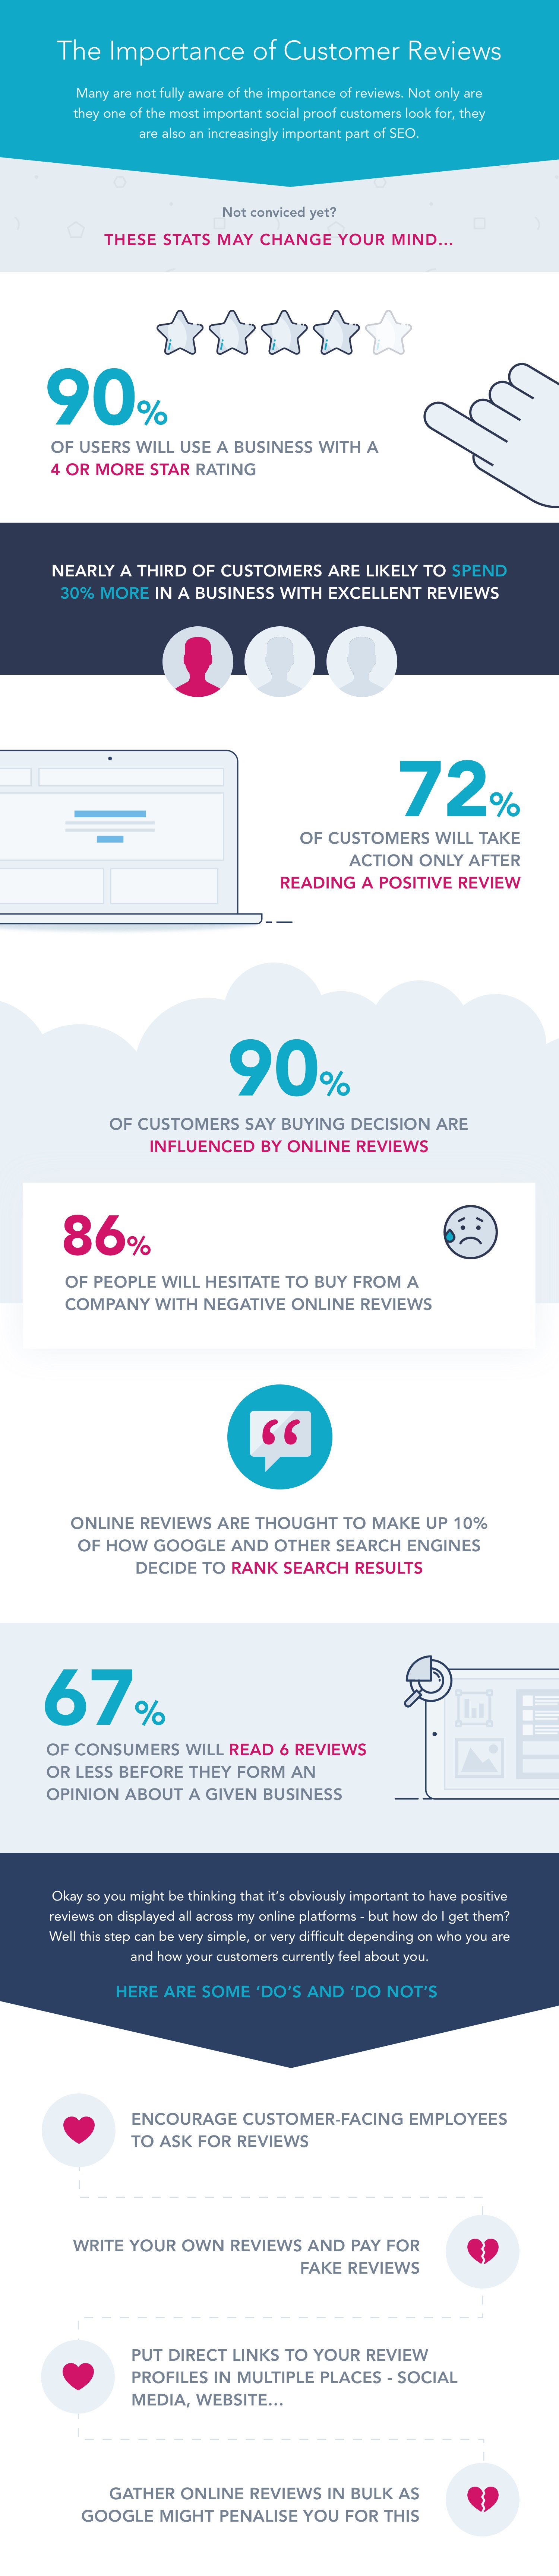 Customer Reviews Infographic - How Reviews Affect SEO